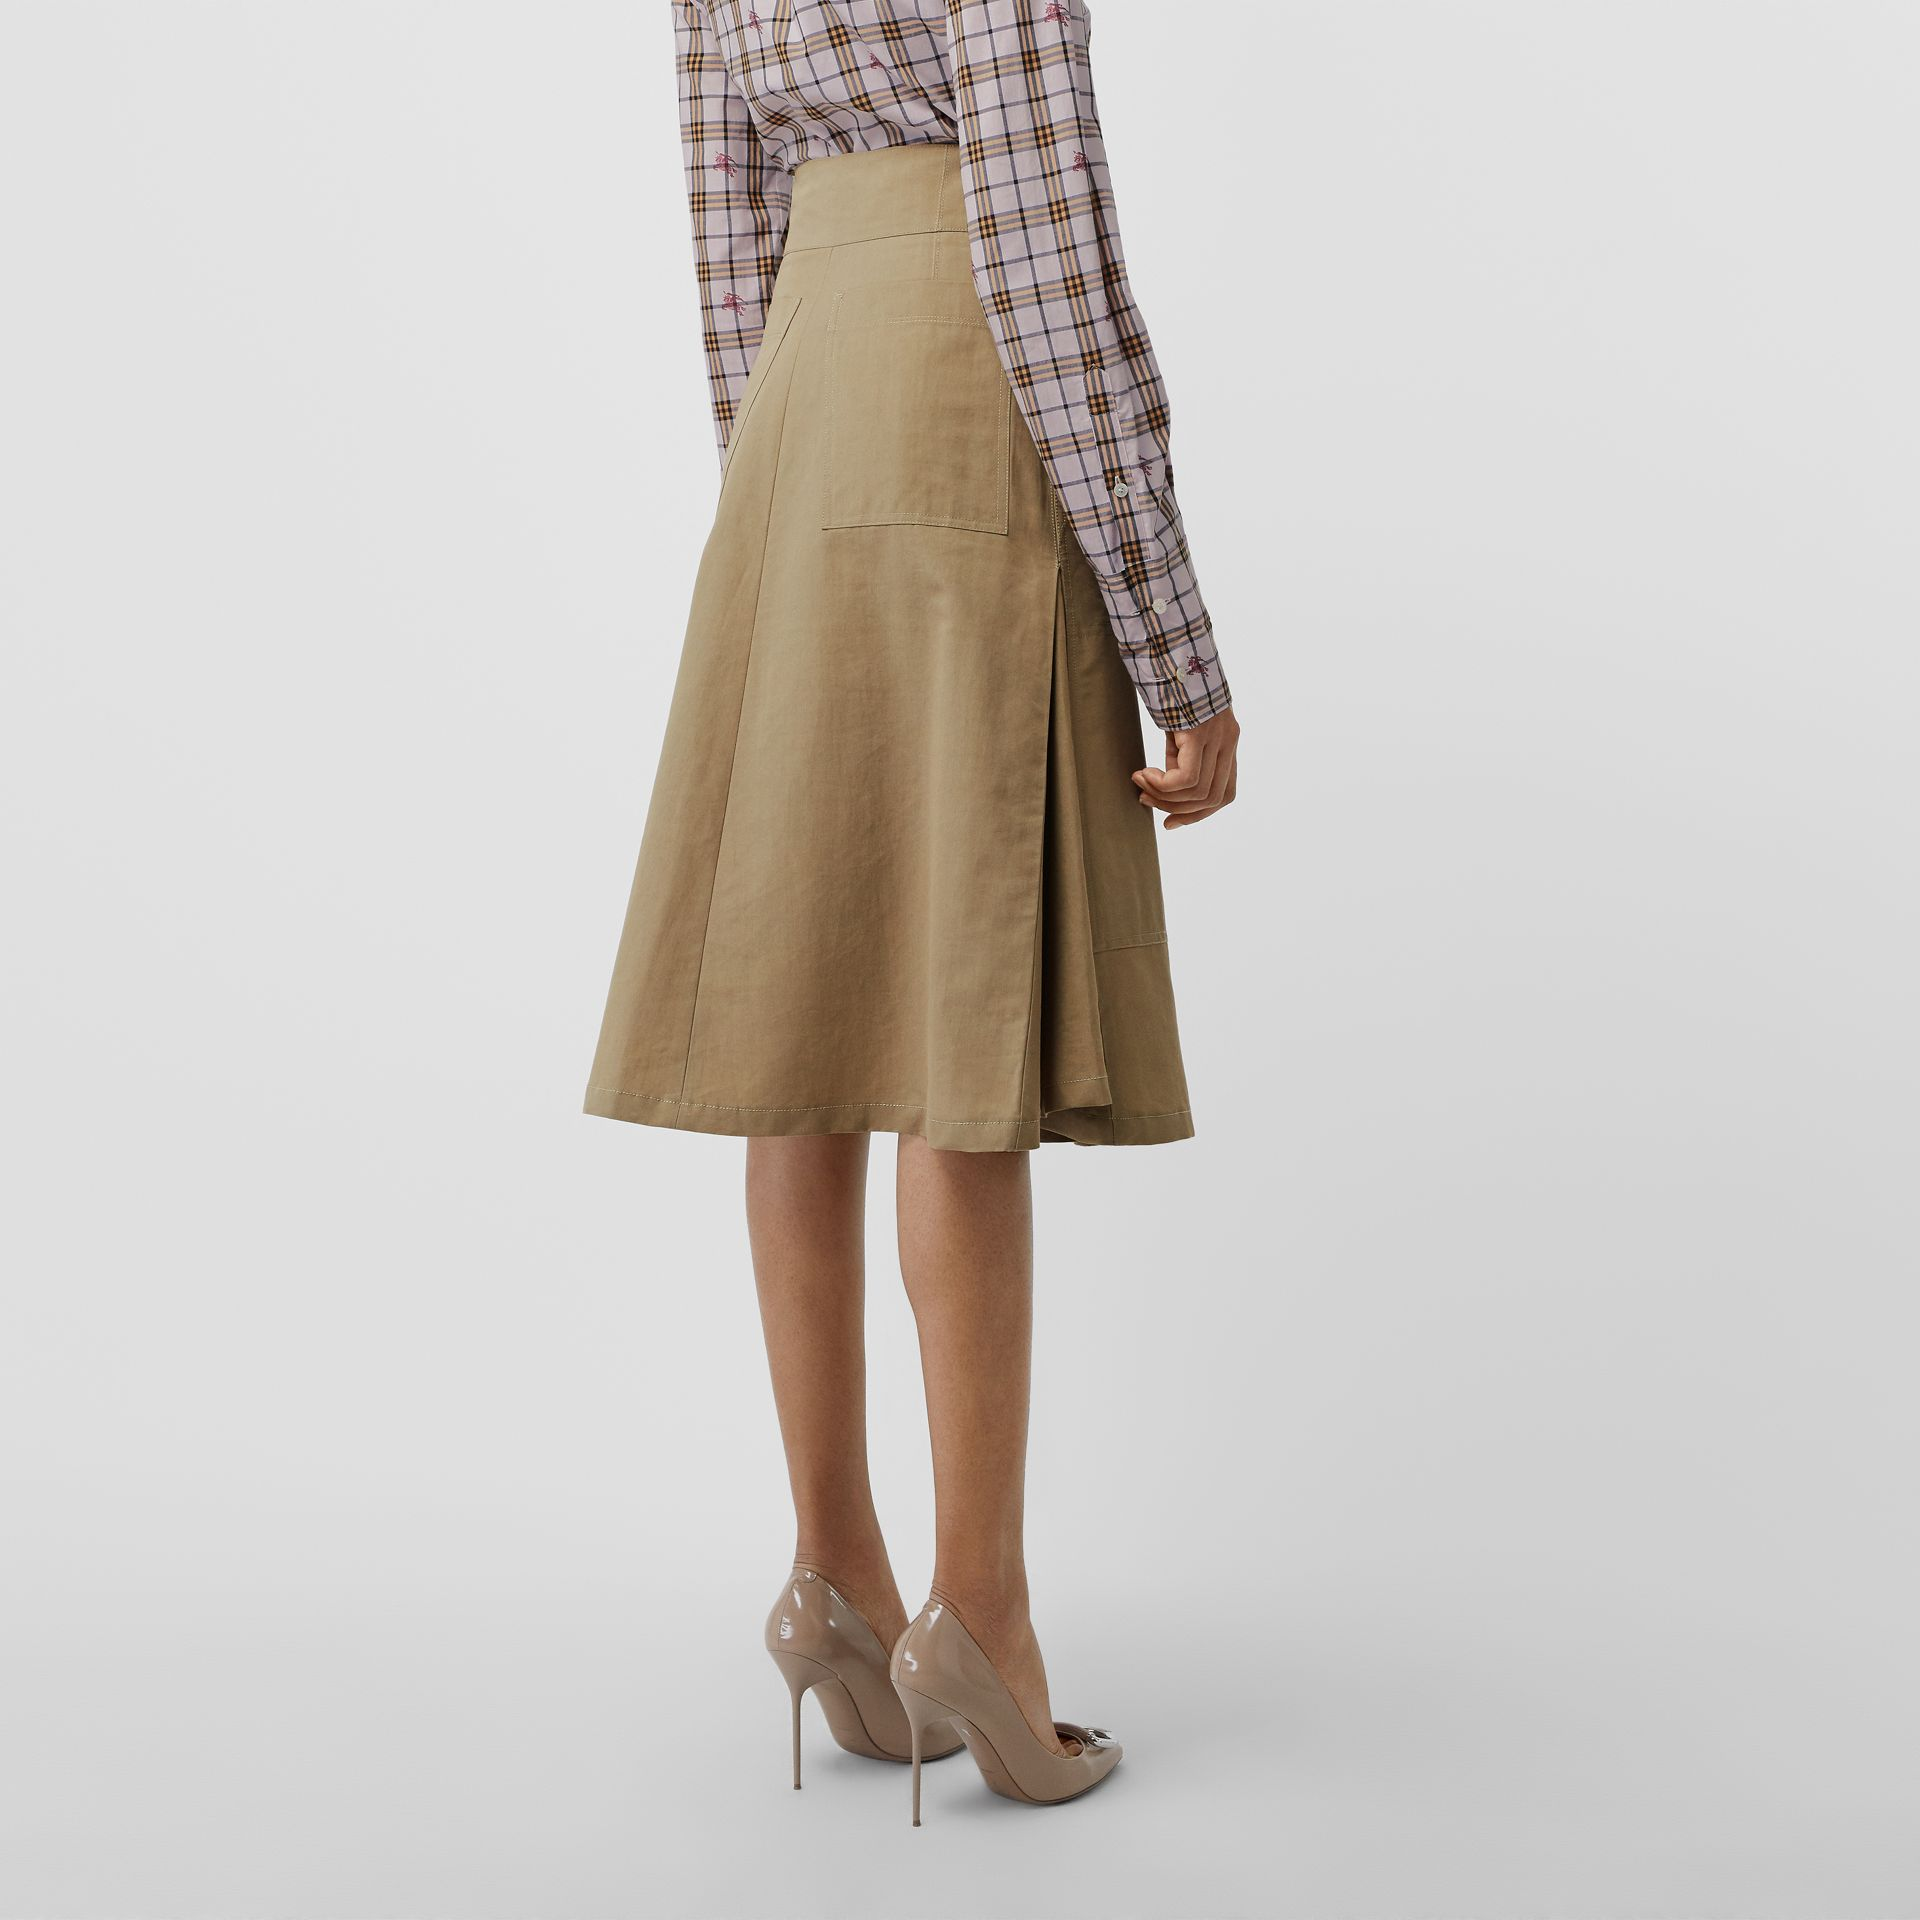 Cotton Silk High-waisted Skirt in Beige - Women | Burberry Hong Kong - gallery image 1